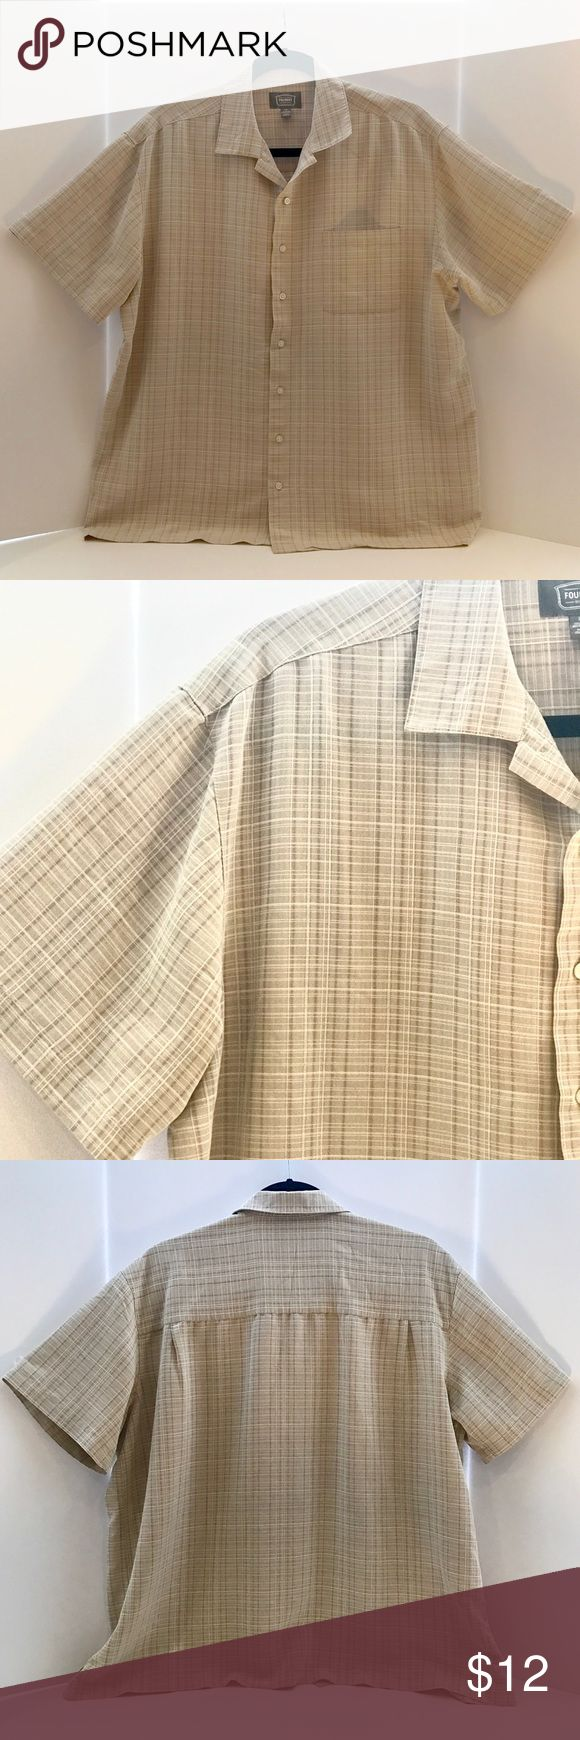 Foundry short sleeve button down Foundry short sleeve casual button down, very light weight and great for summer! Shirt can also been used for business on those hot days! Foundry Shirts Casual Button Down Shirts